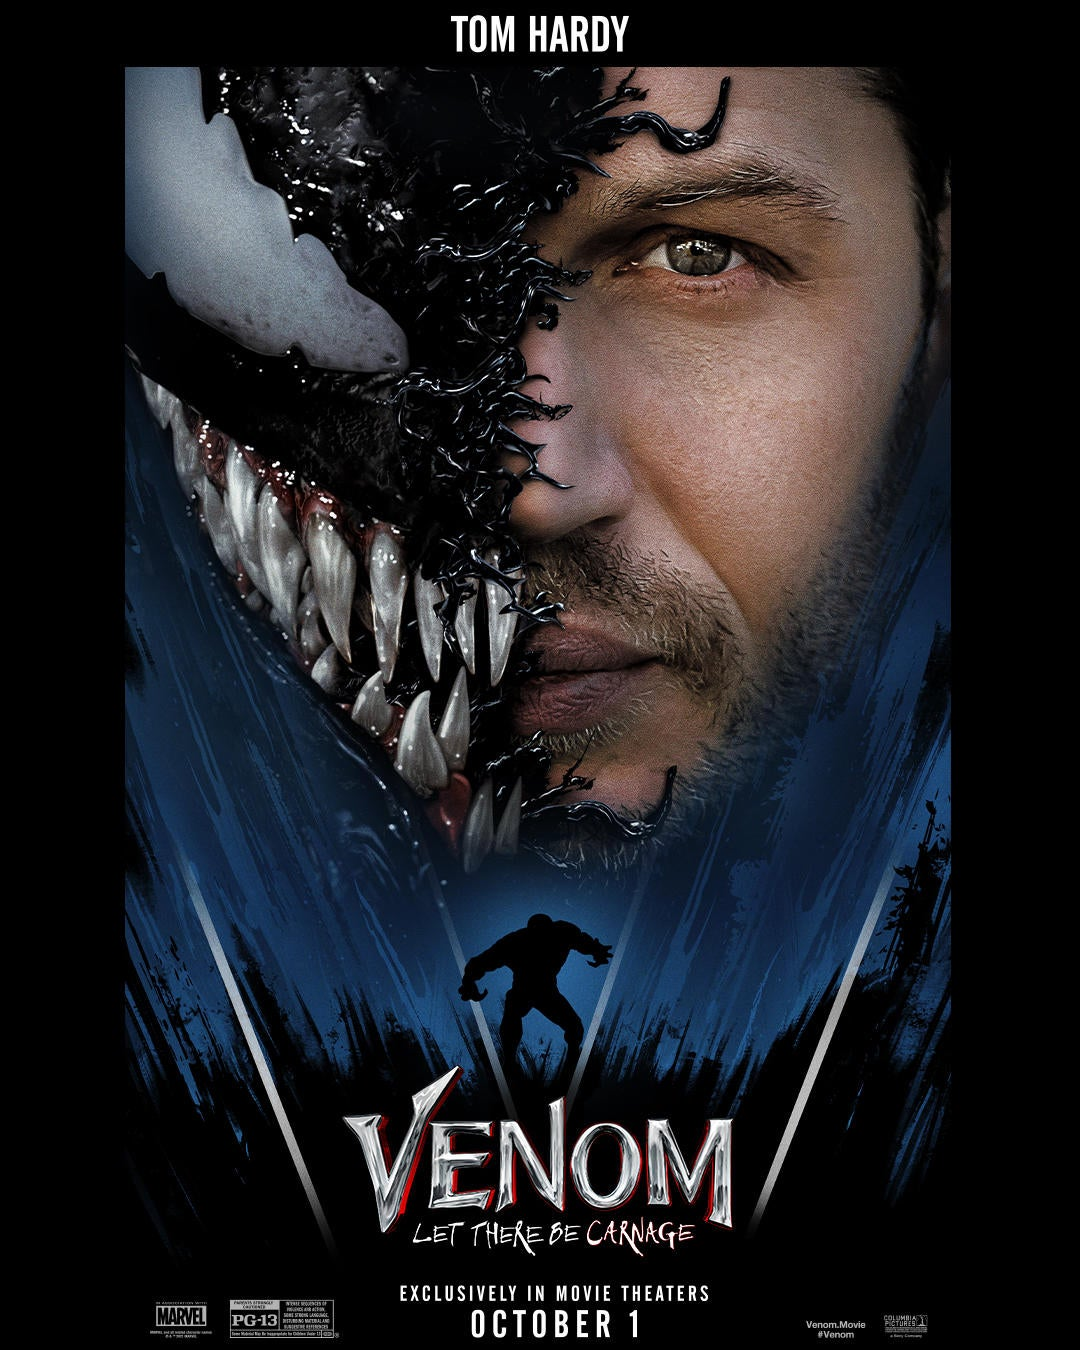 venom-let-there-be-carnage-5.jpg